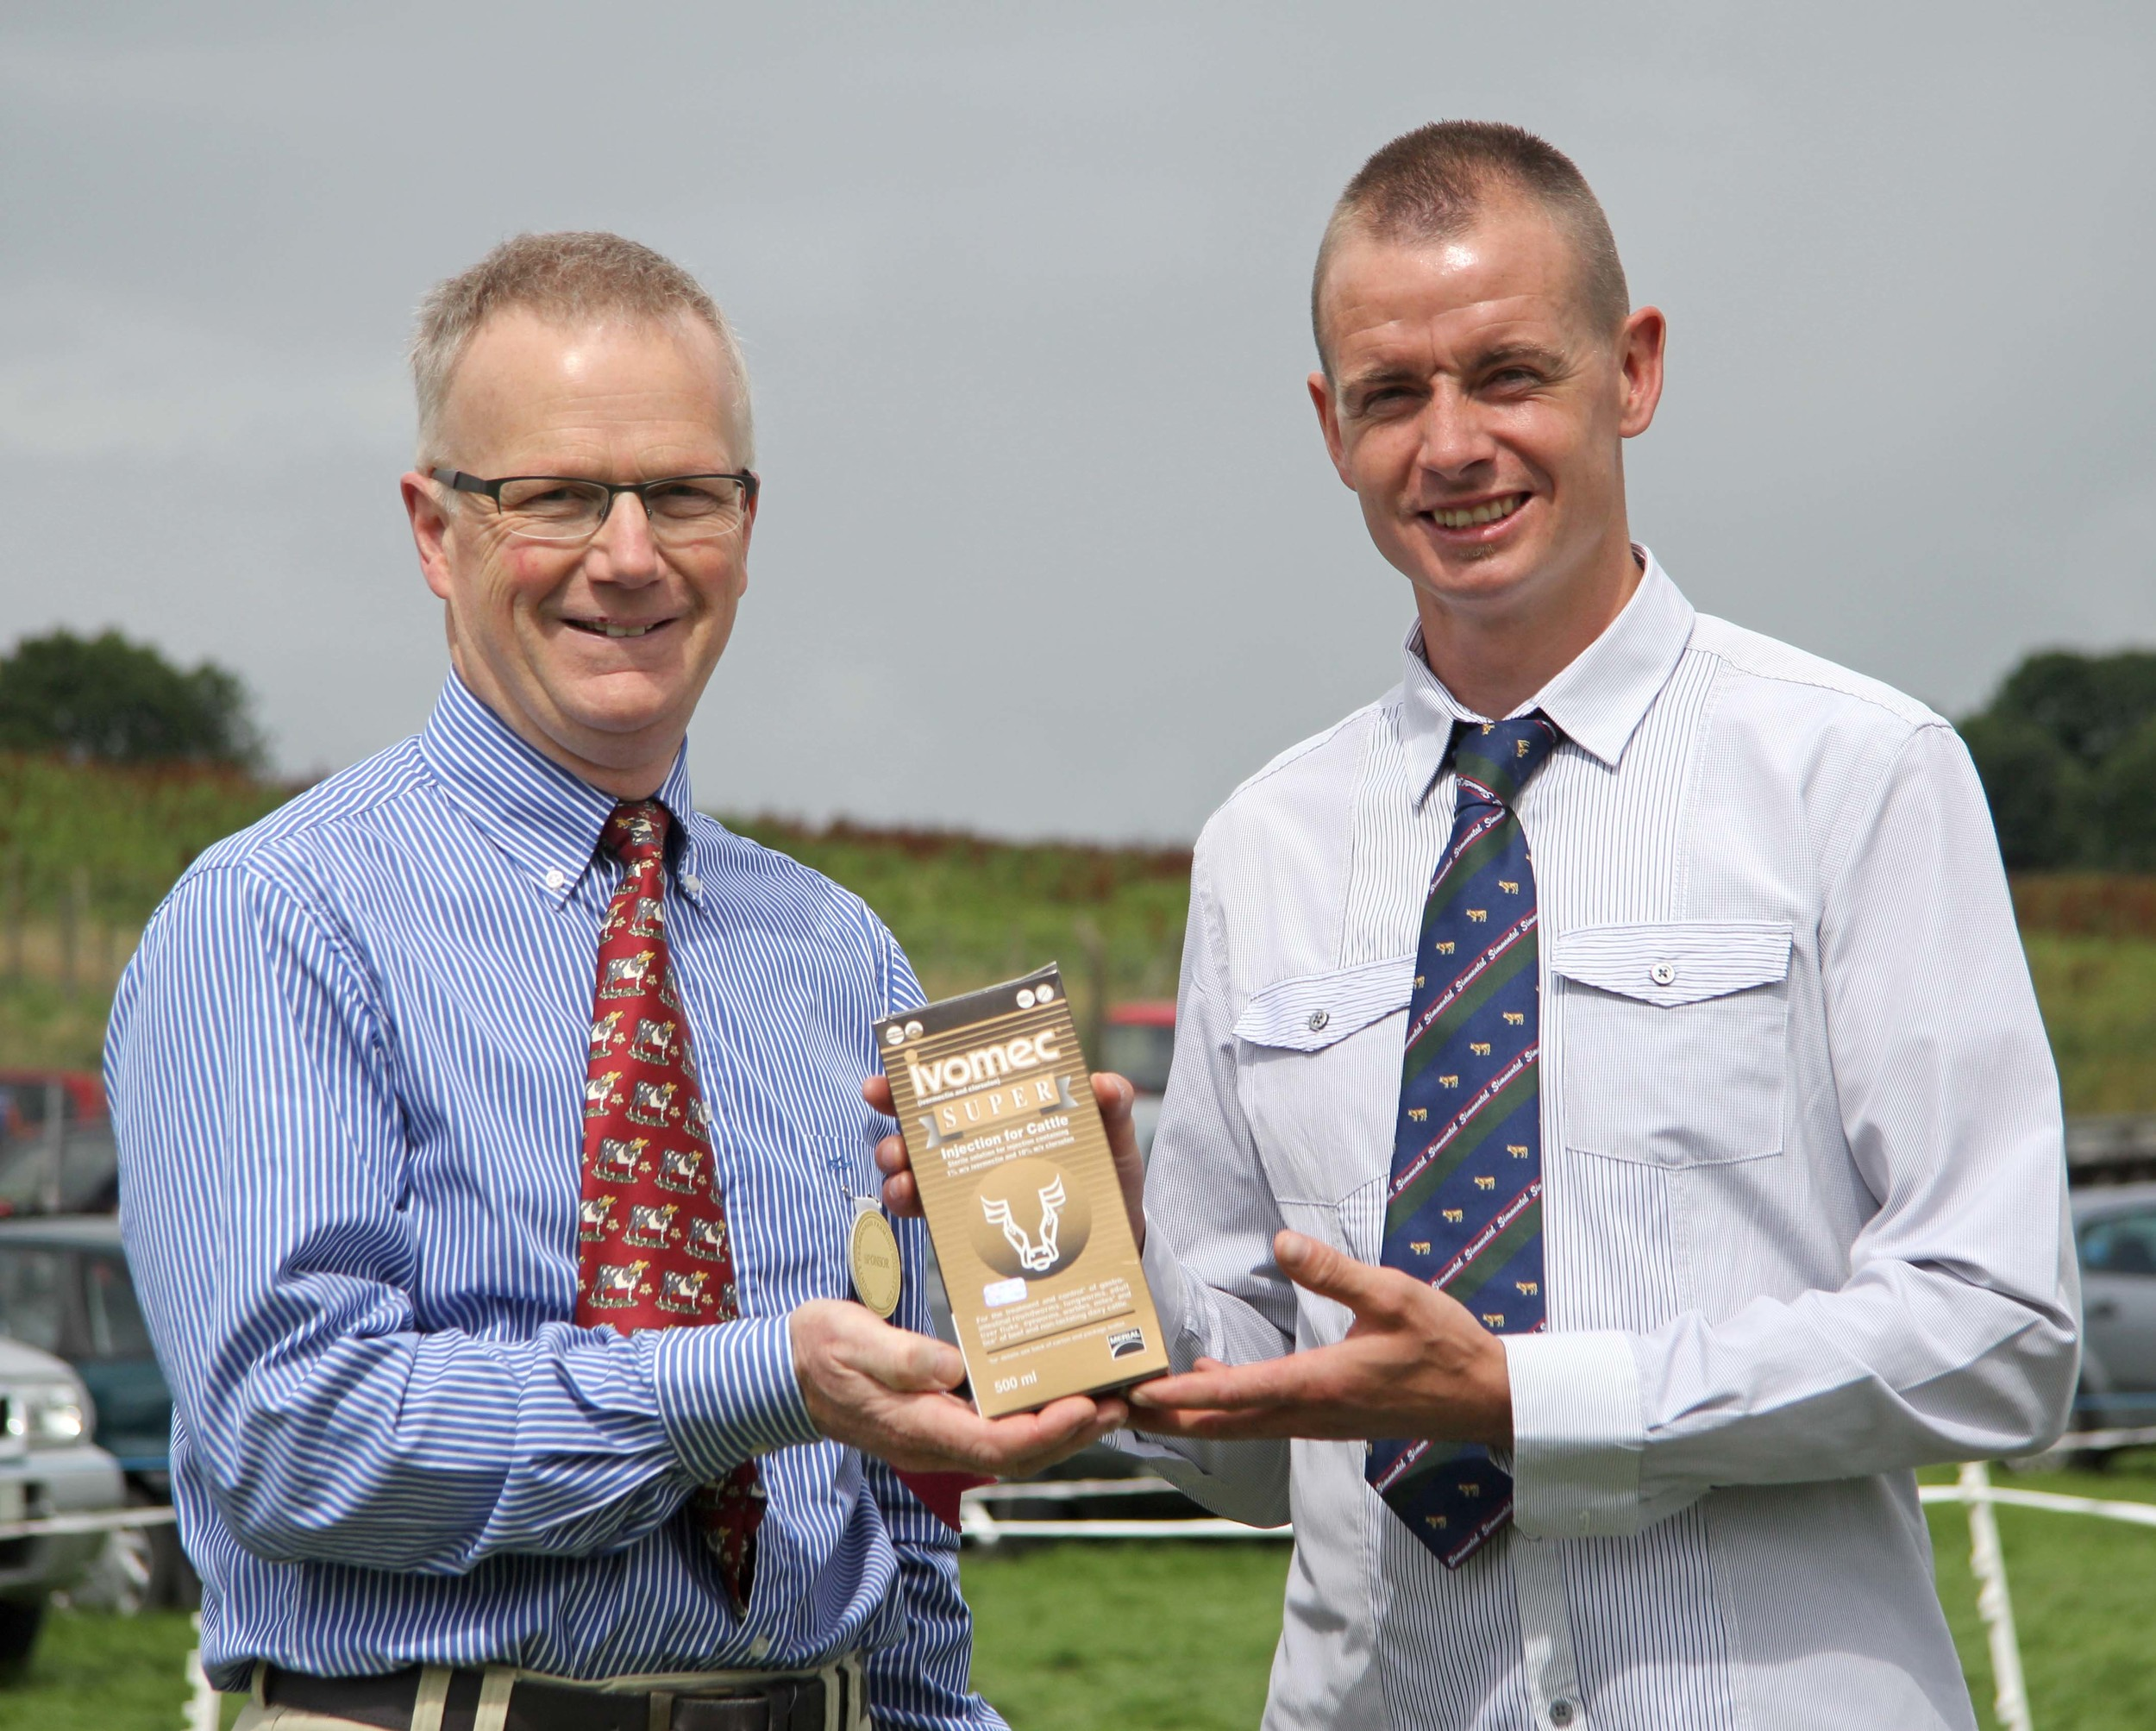 NI Simmental Cattle Breeders' Club chairman Richard Rodgers is pictured with Philip Clarke, Merial Animal Health, sponsor of the Ivomec Super Simmental Pair of the Year competition.